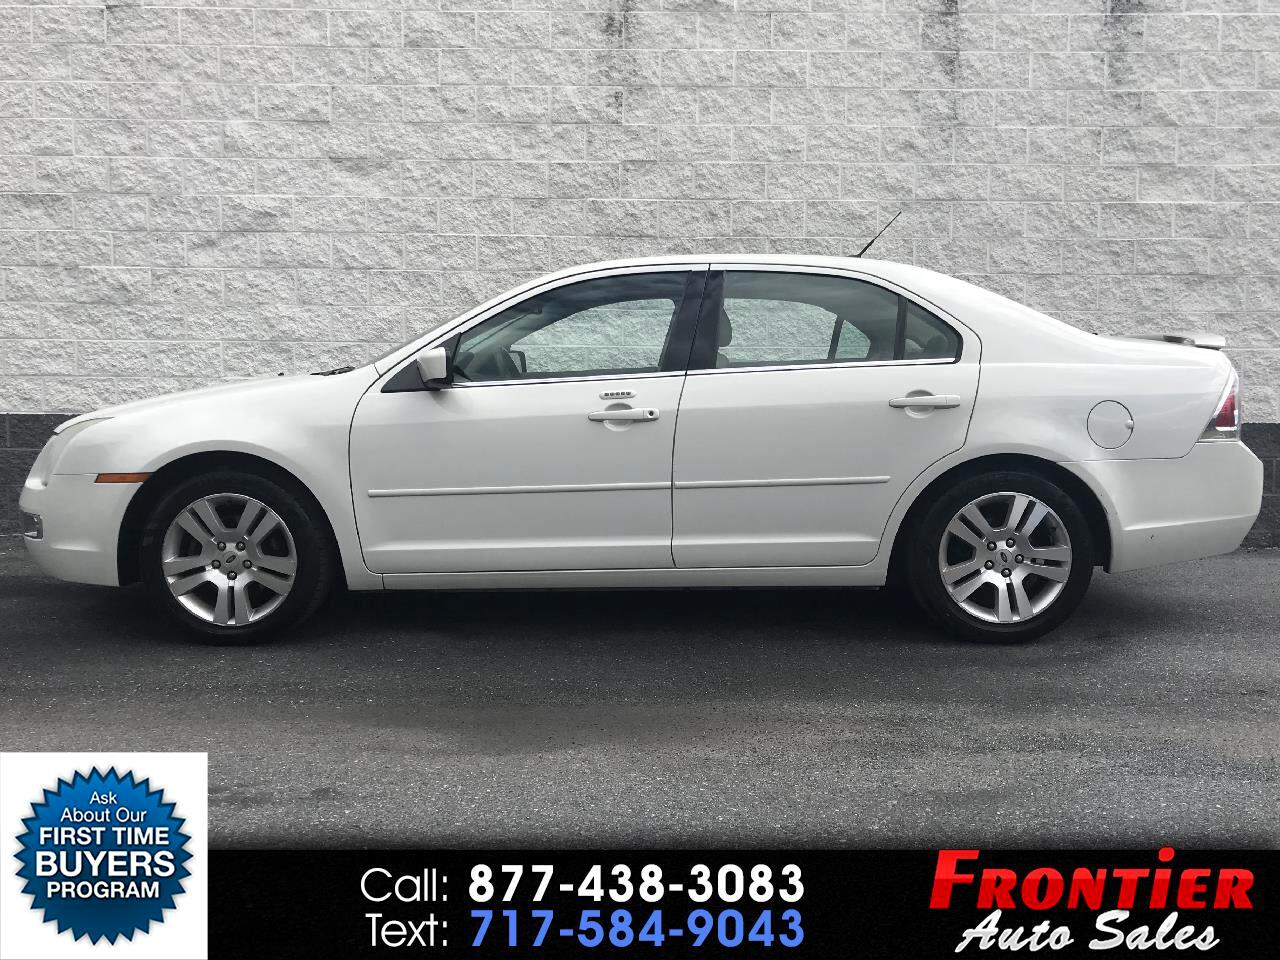 Ford Fusion 4dr Sdn V6 SEL AWD 2008